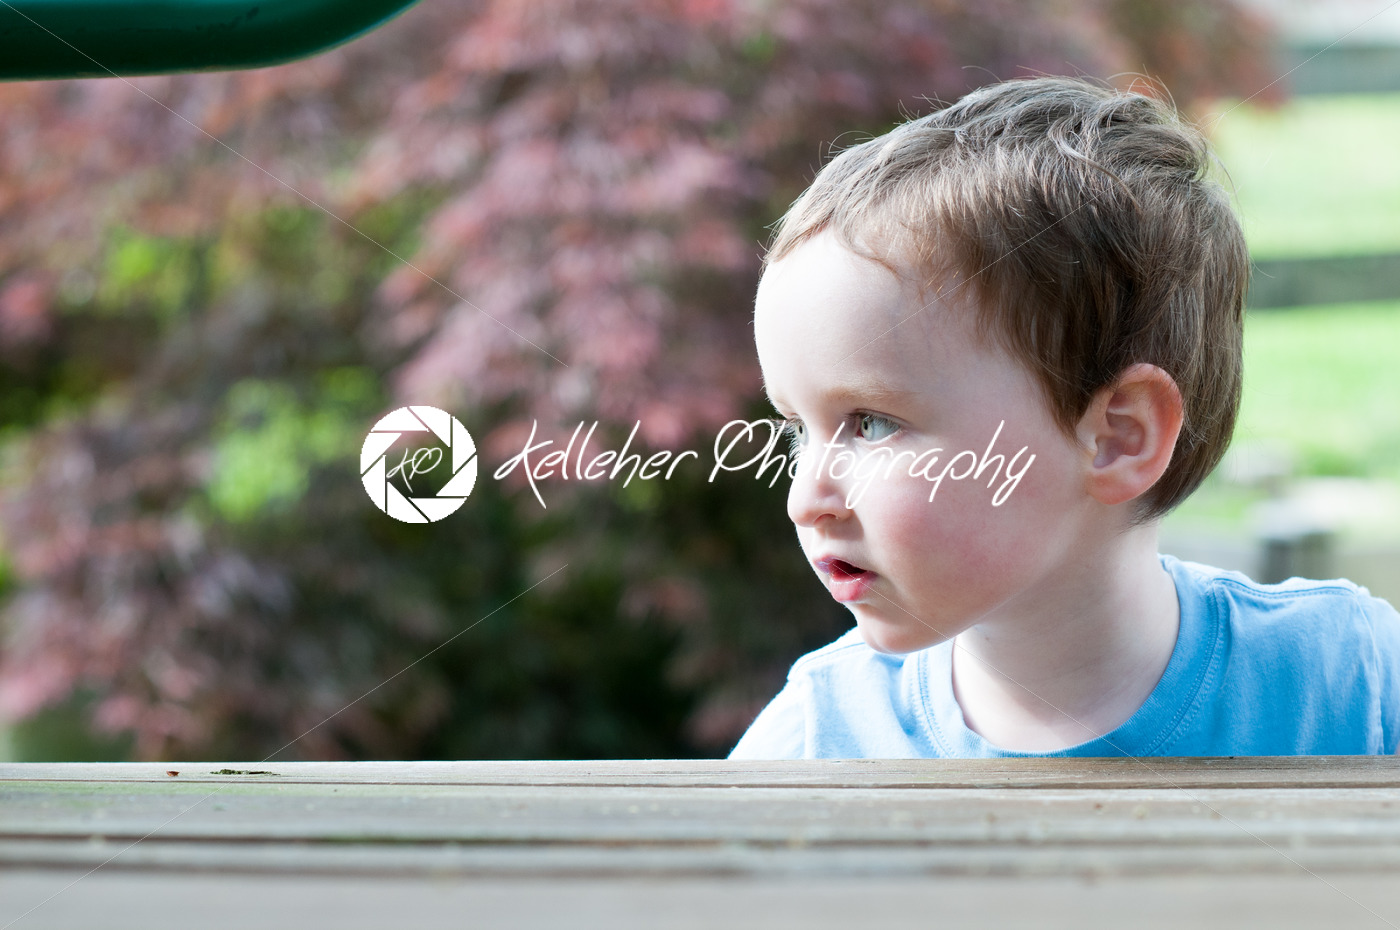 Young boy having fun on a swing set - Kelleher Photography Store